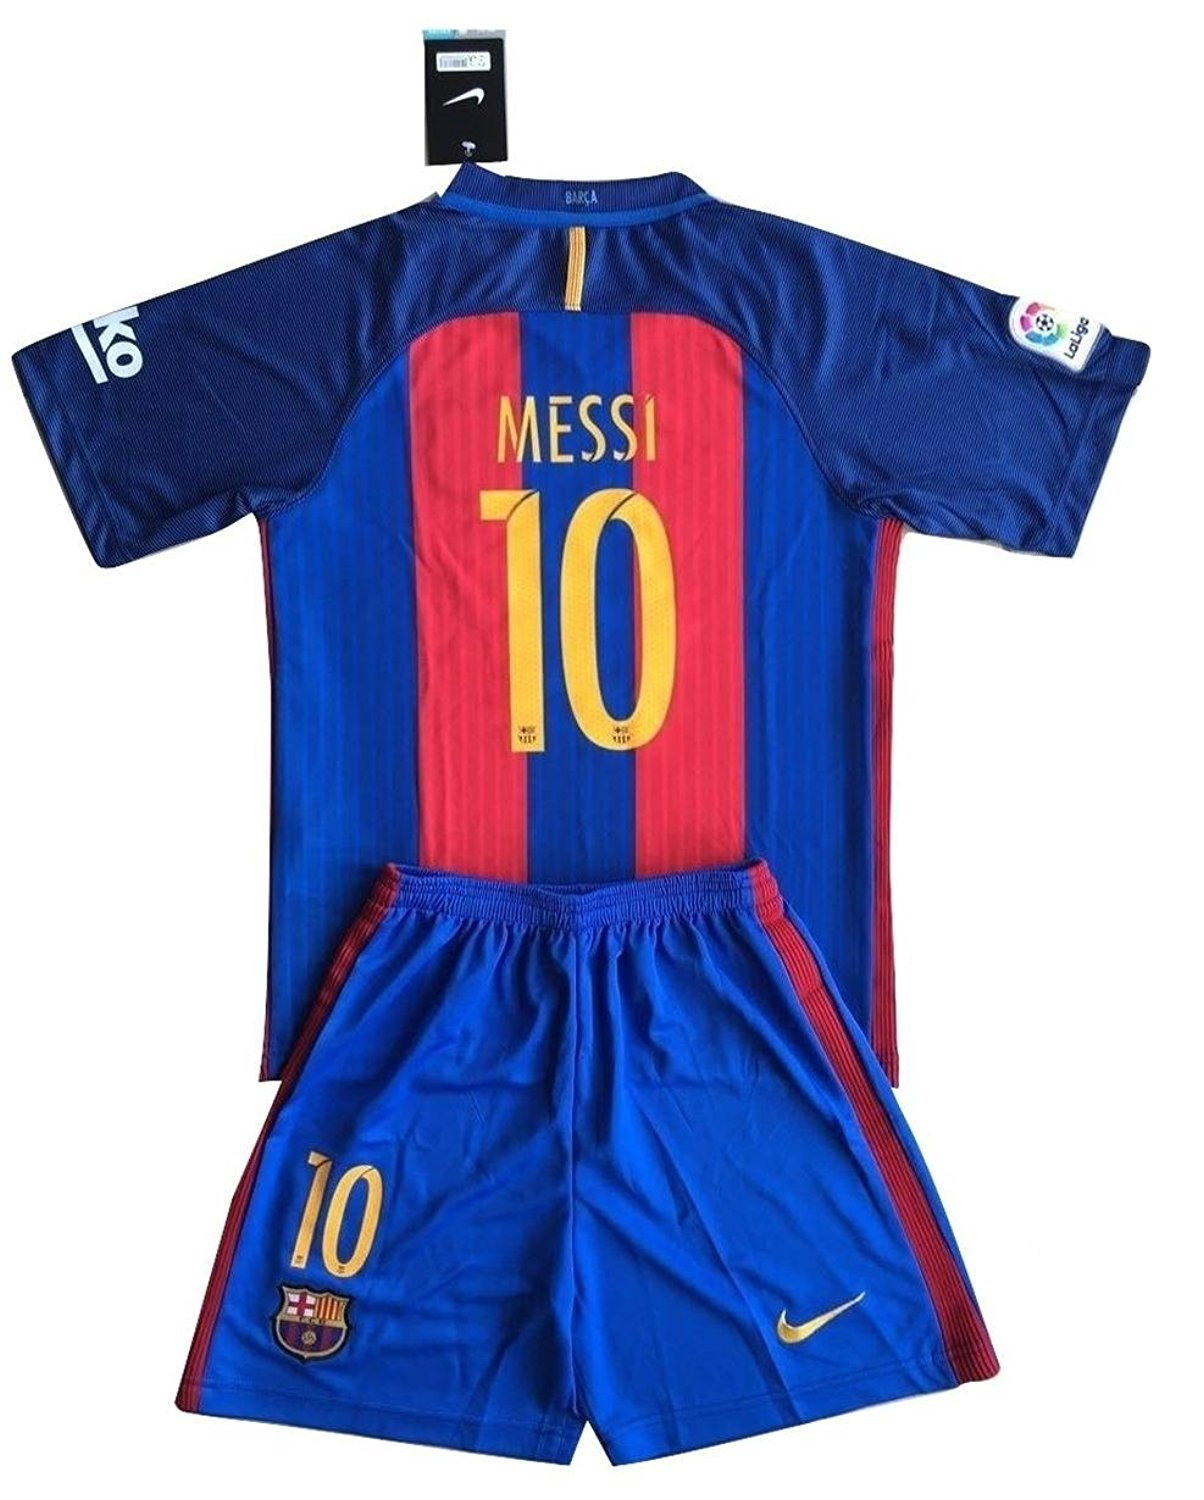 huge selection of 2f676 23979 Youth Soccer Jerseys Messi